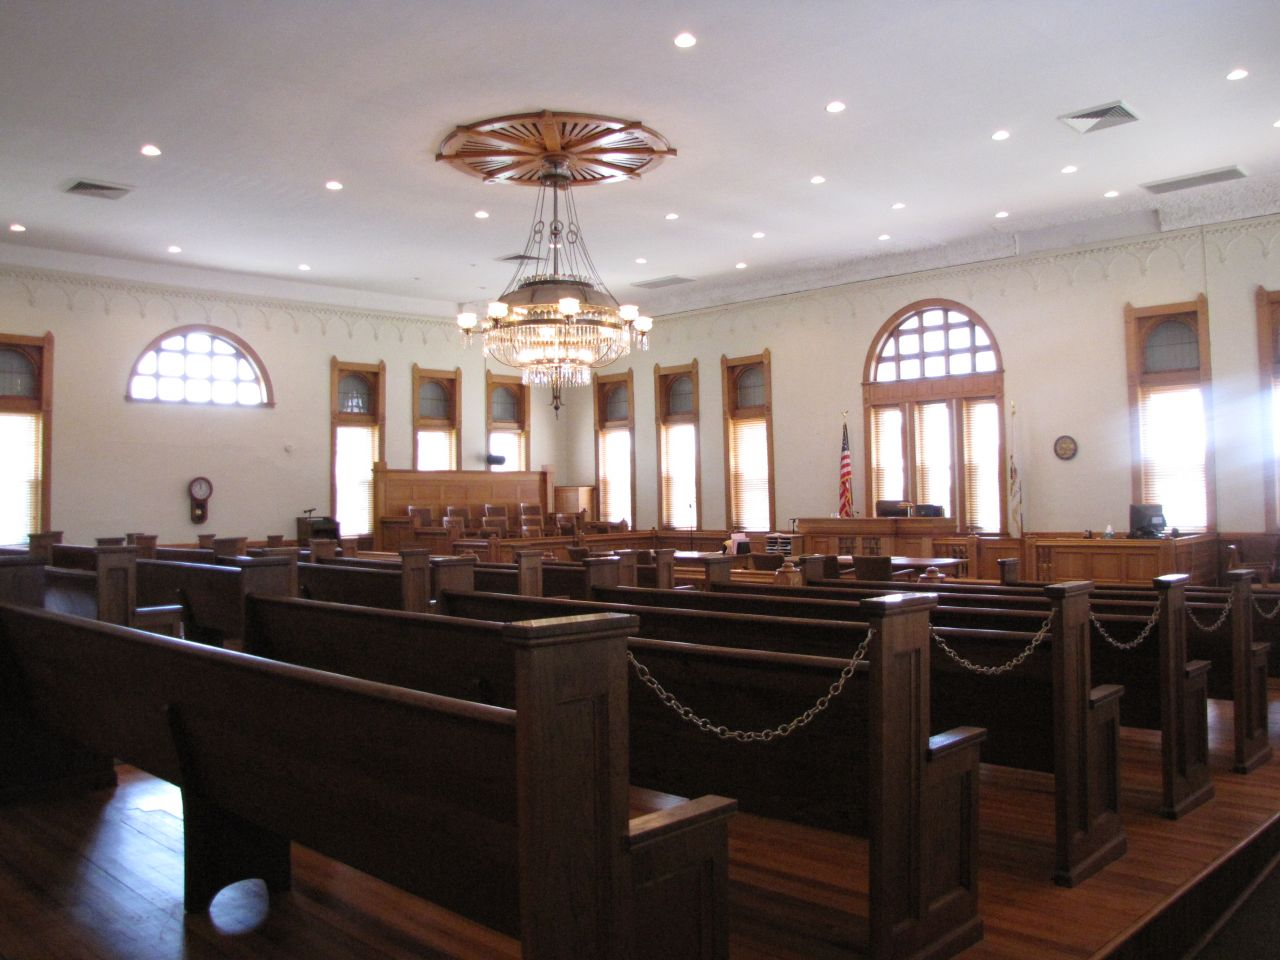 The restored main courtroom